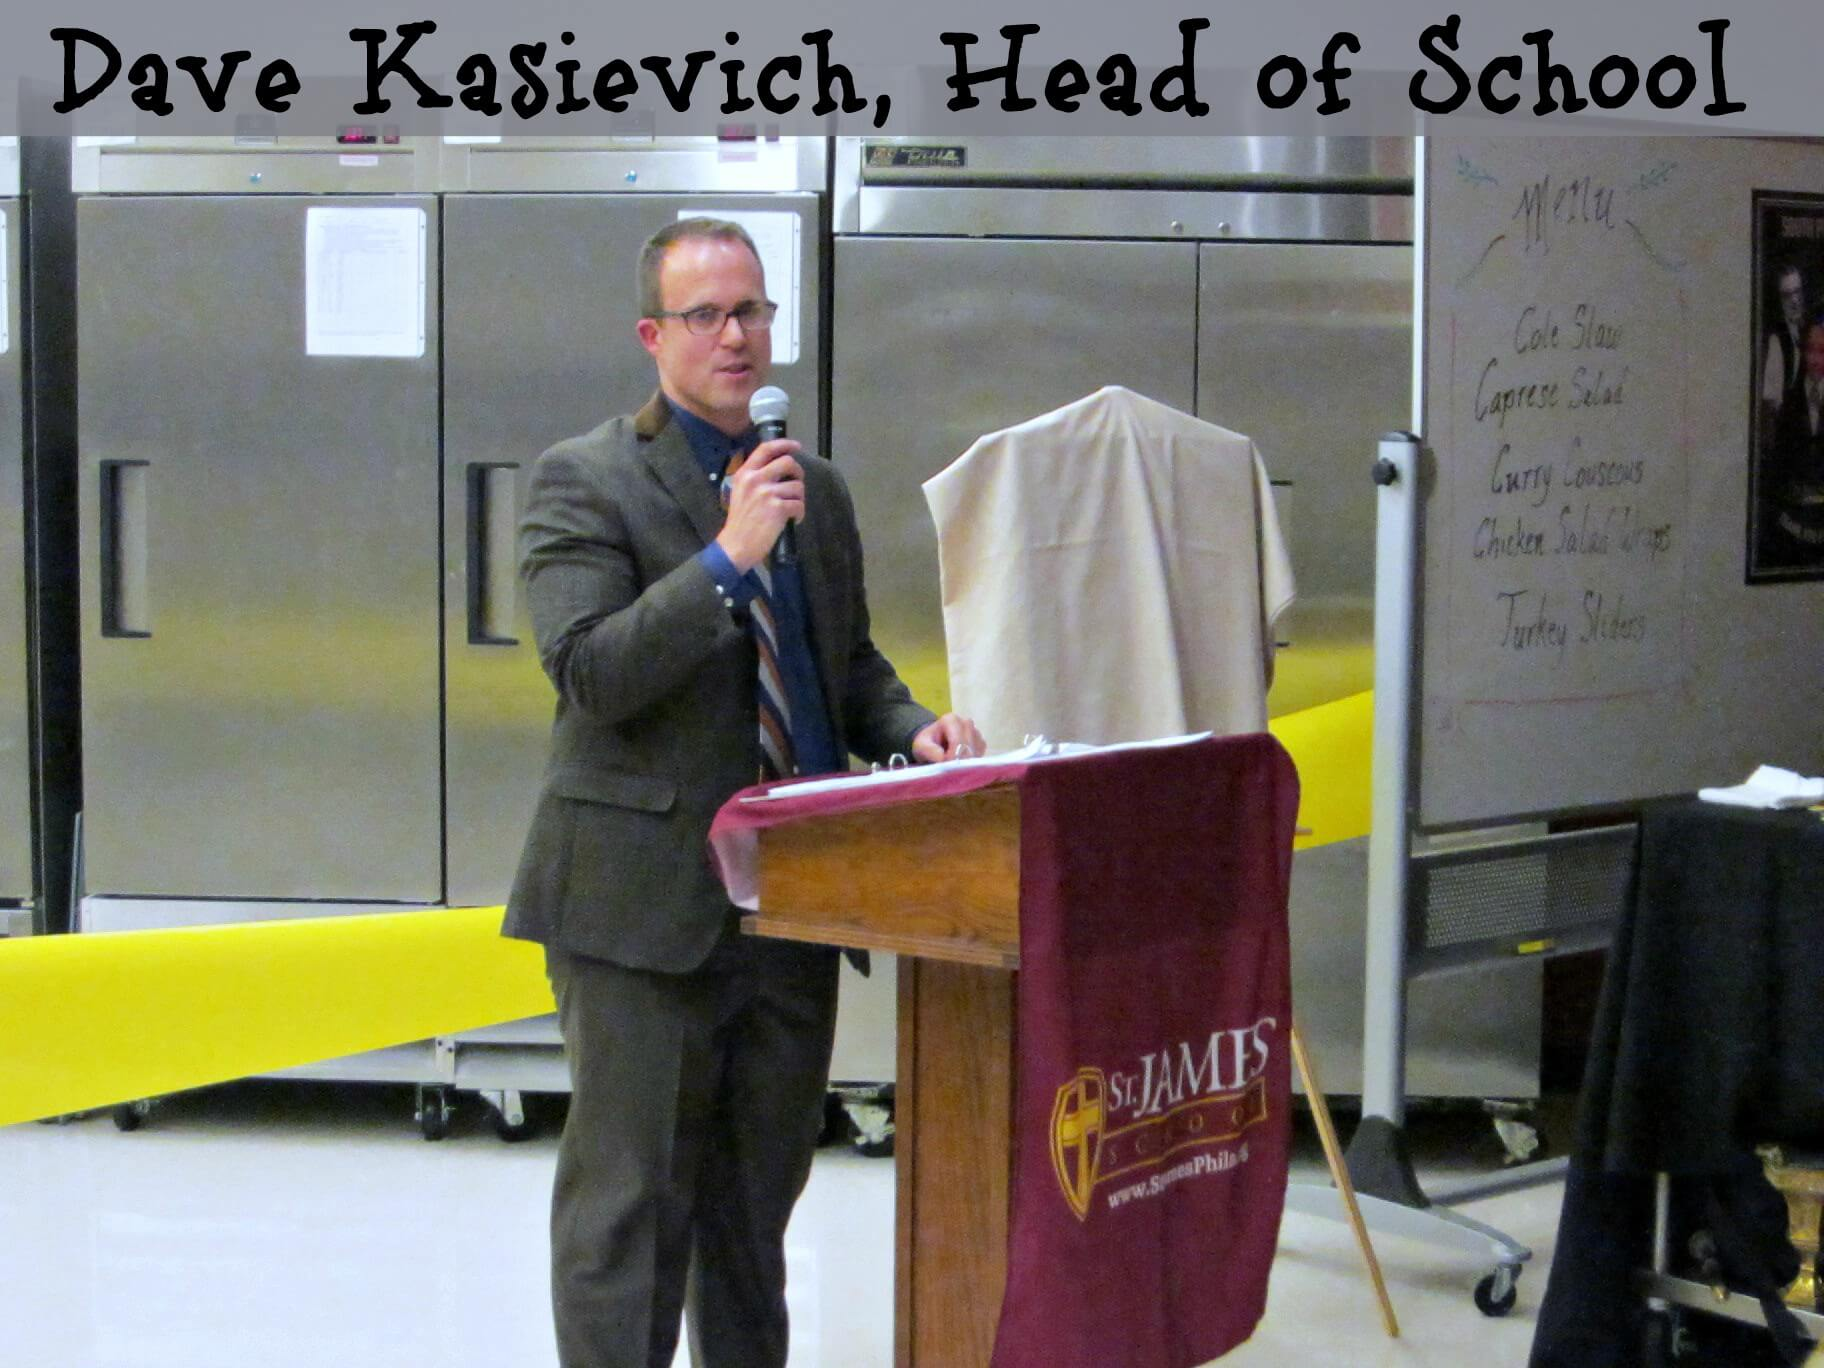 East Falls Local St James Neighborhood Kitchen 2-11 Dave Kasievich head of school text